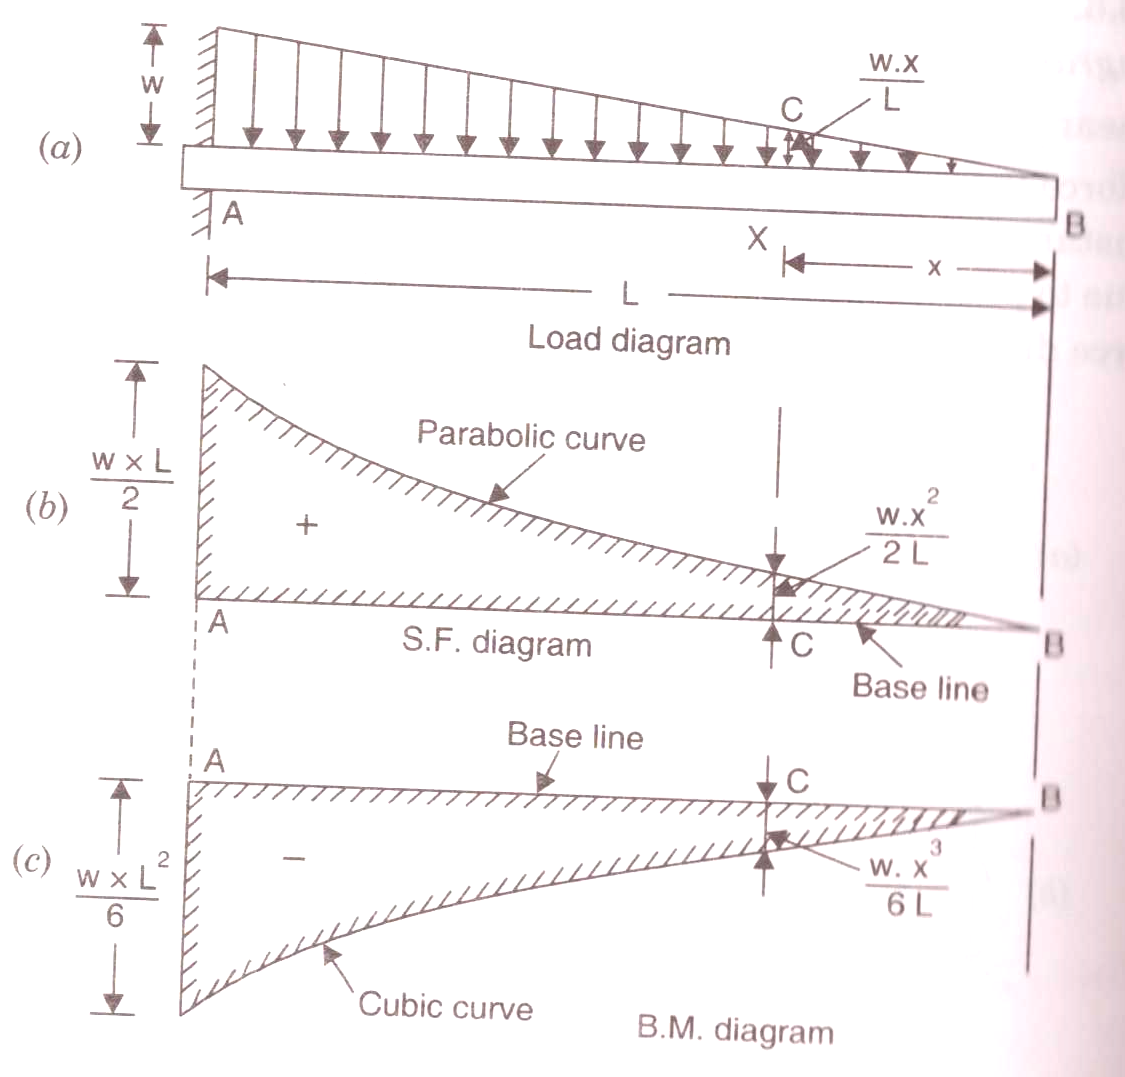 What is the bending moment diagram of a cantilever subjected ... Bending Moment Diagram Cantilever on